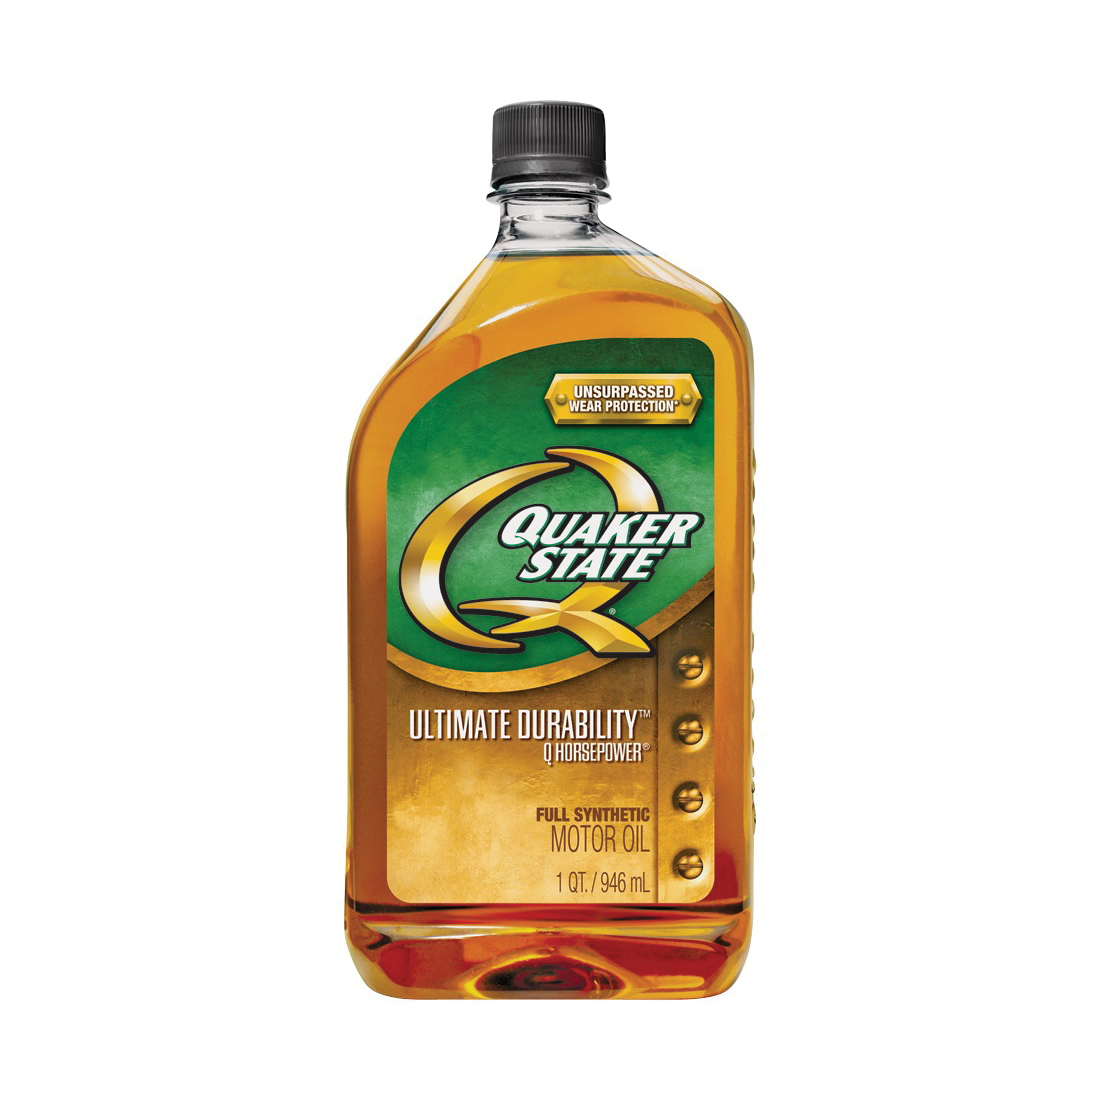 Picture of Quaker State 550046169/36717 Motor Oil, 5W-30, 1 qt Package